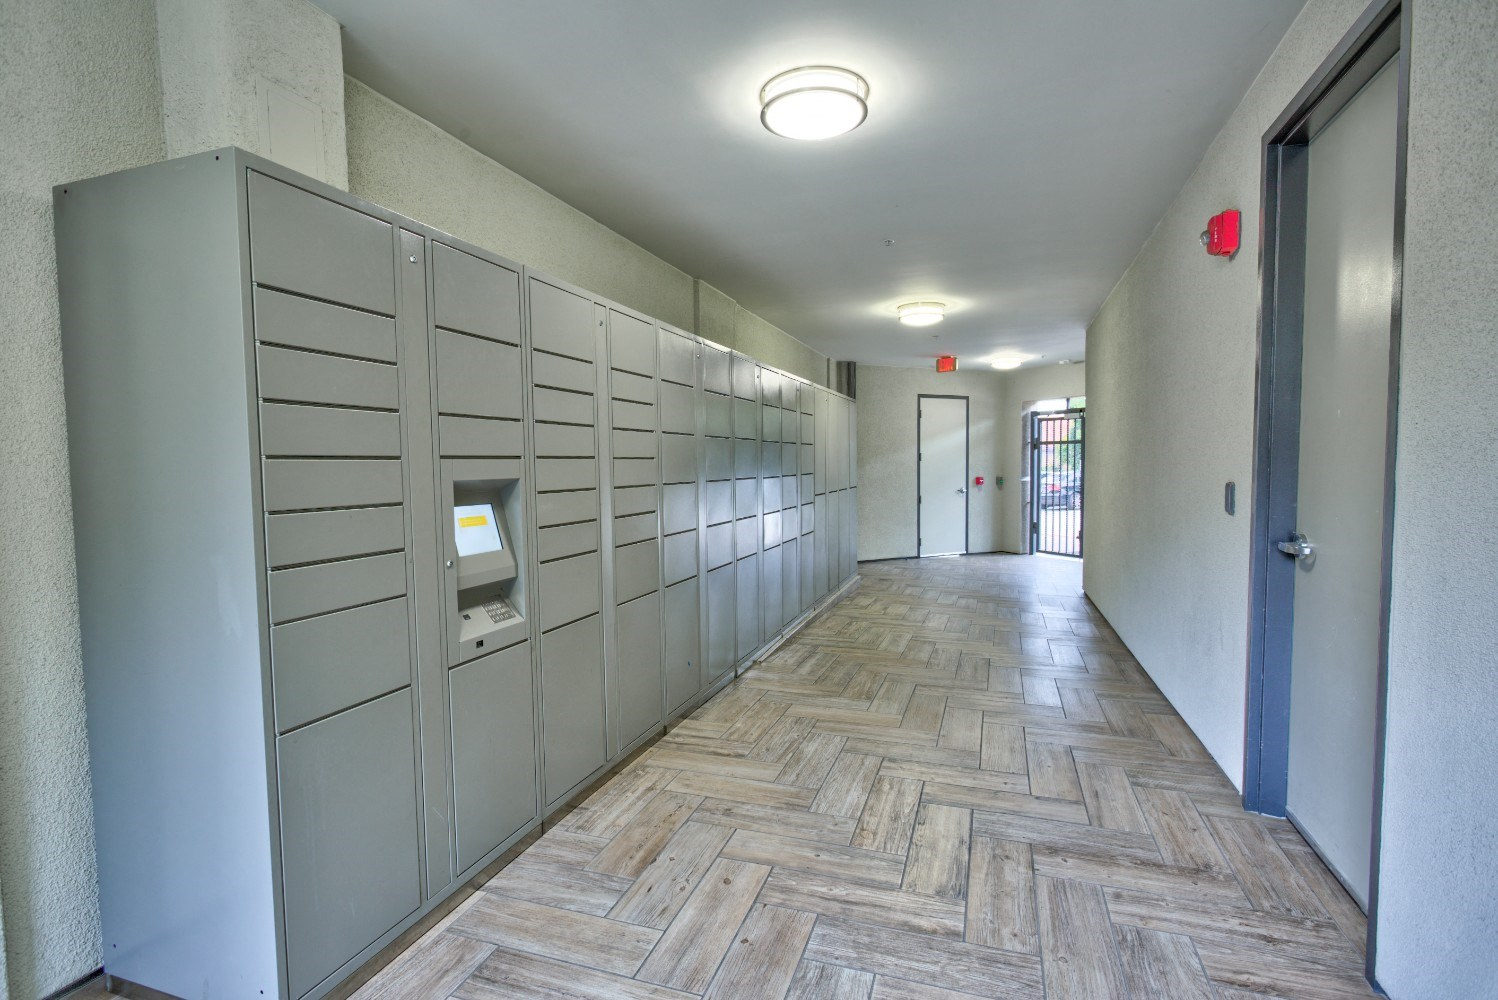 Package receiving at Accent apartments, California, 90066